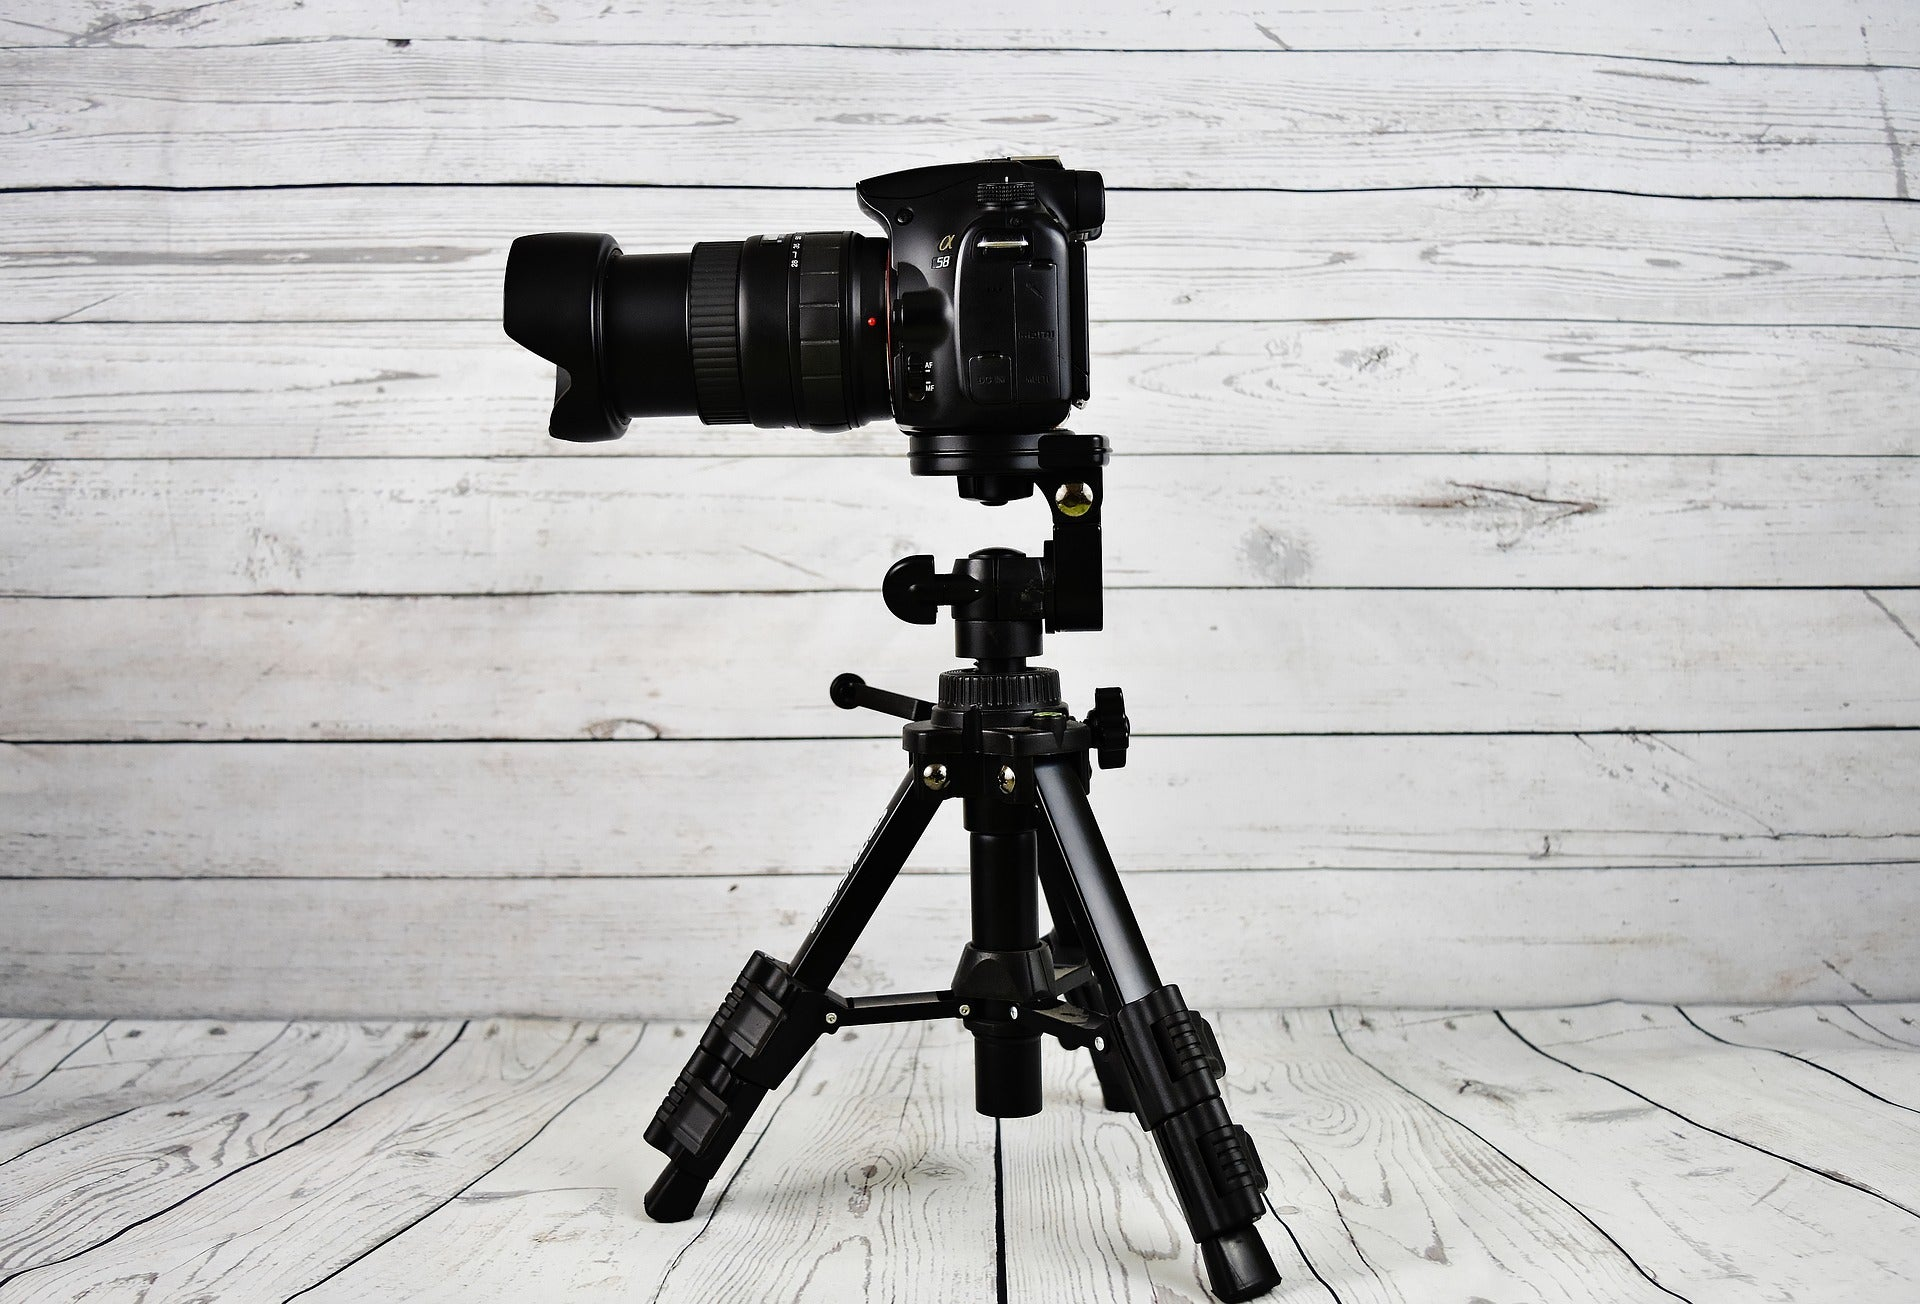 How To Create Digital Merch With Video Camera